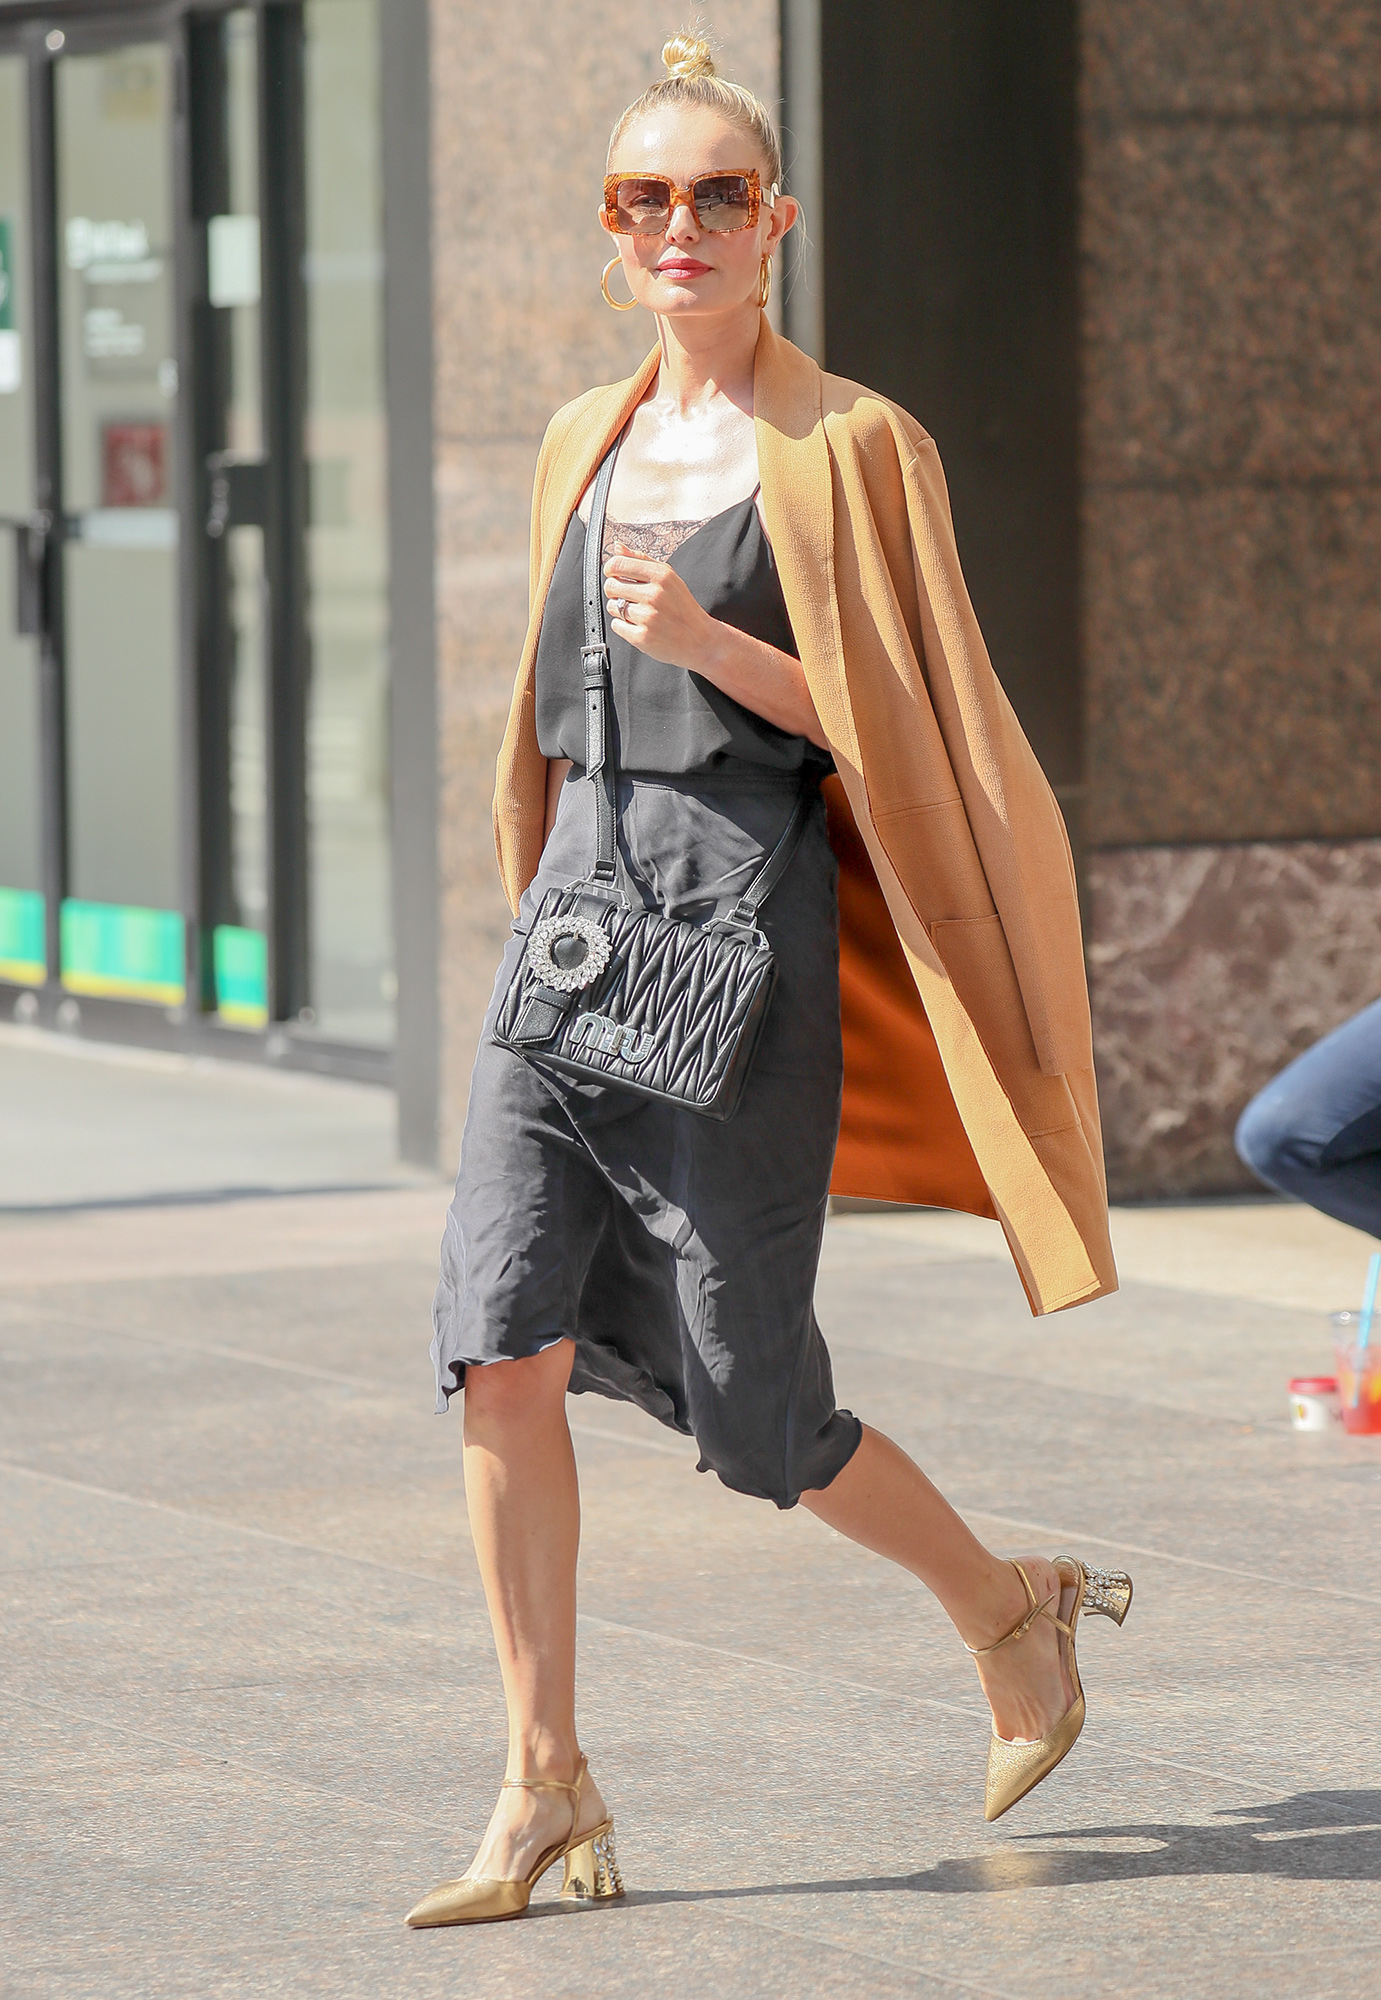 EXCLUSIVE: Kate Bosworth steps out in stylish outfit in New York City